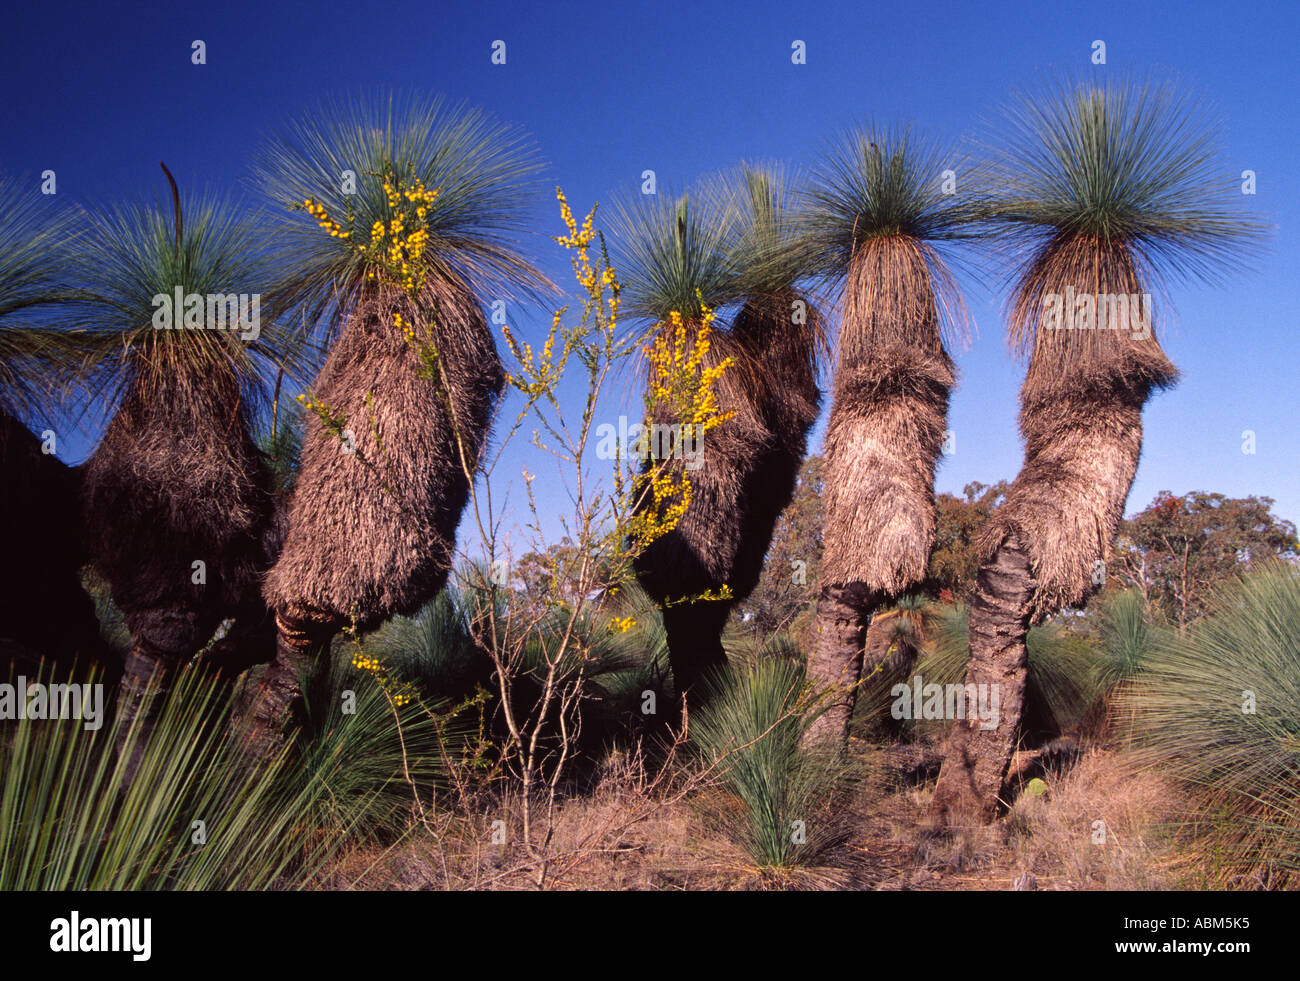 Grass trees - Xanthorrhoea species - stand like sentries in an Australian rural landscape Stock Photo